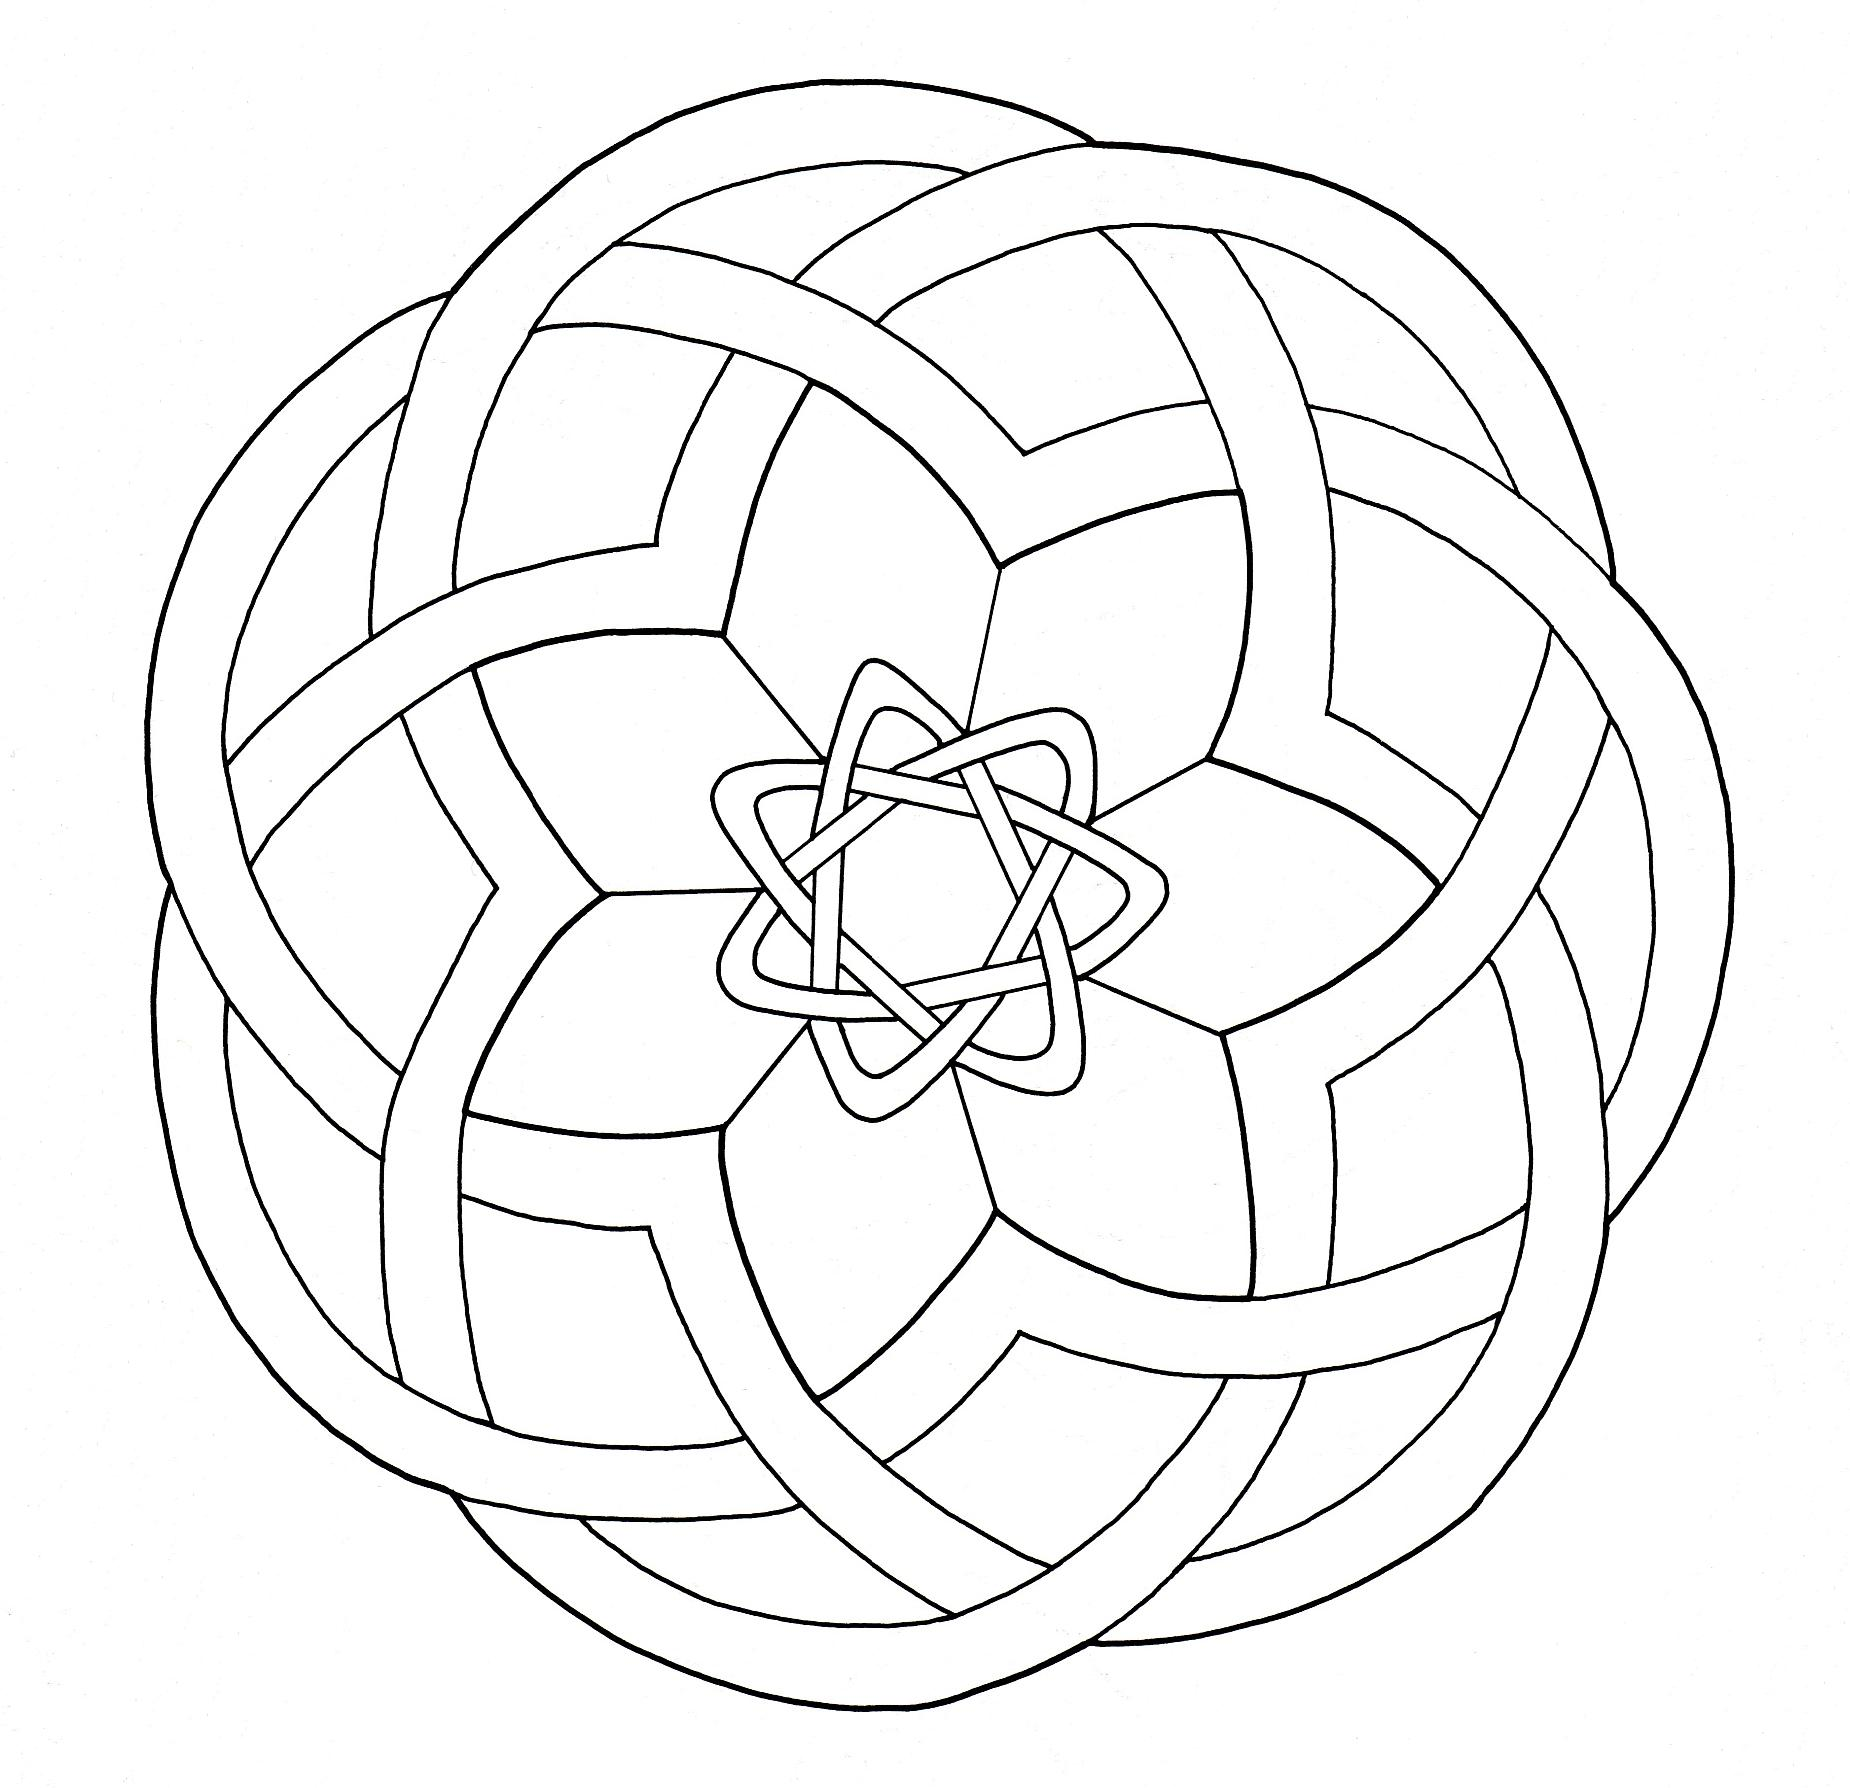 Intricate Design inspired by Celtic Art, looking like a simple Mandala